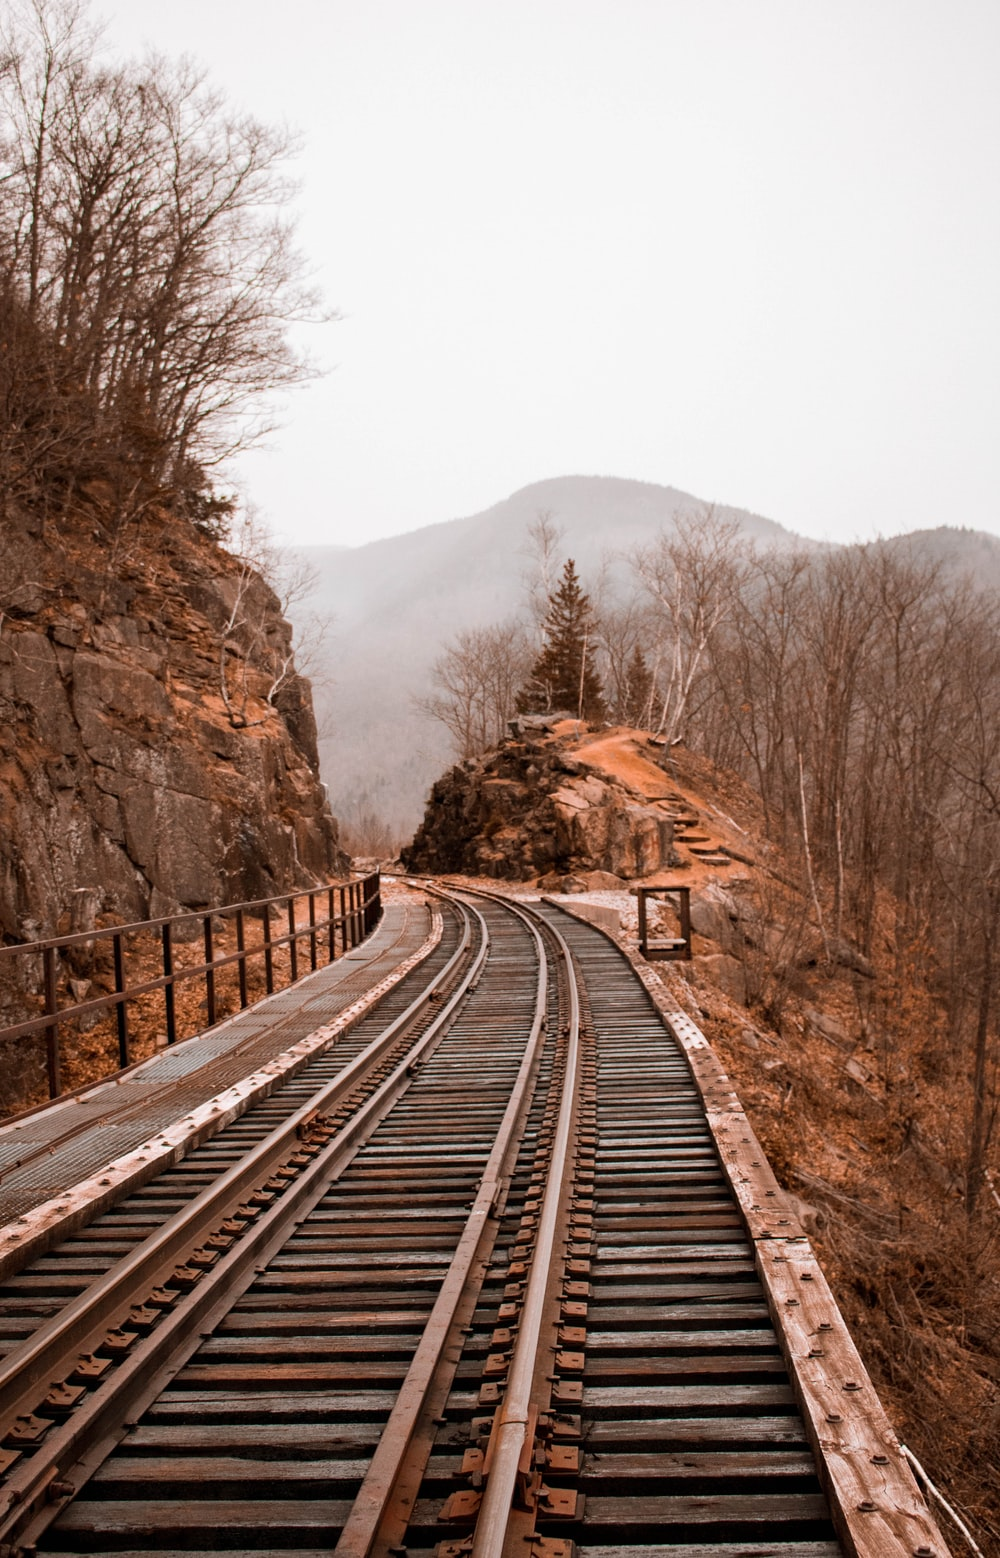 brown and gray train rails between rock hill and cliff